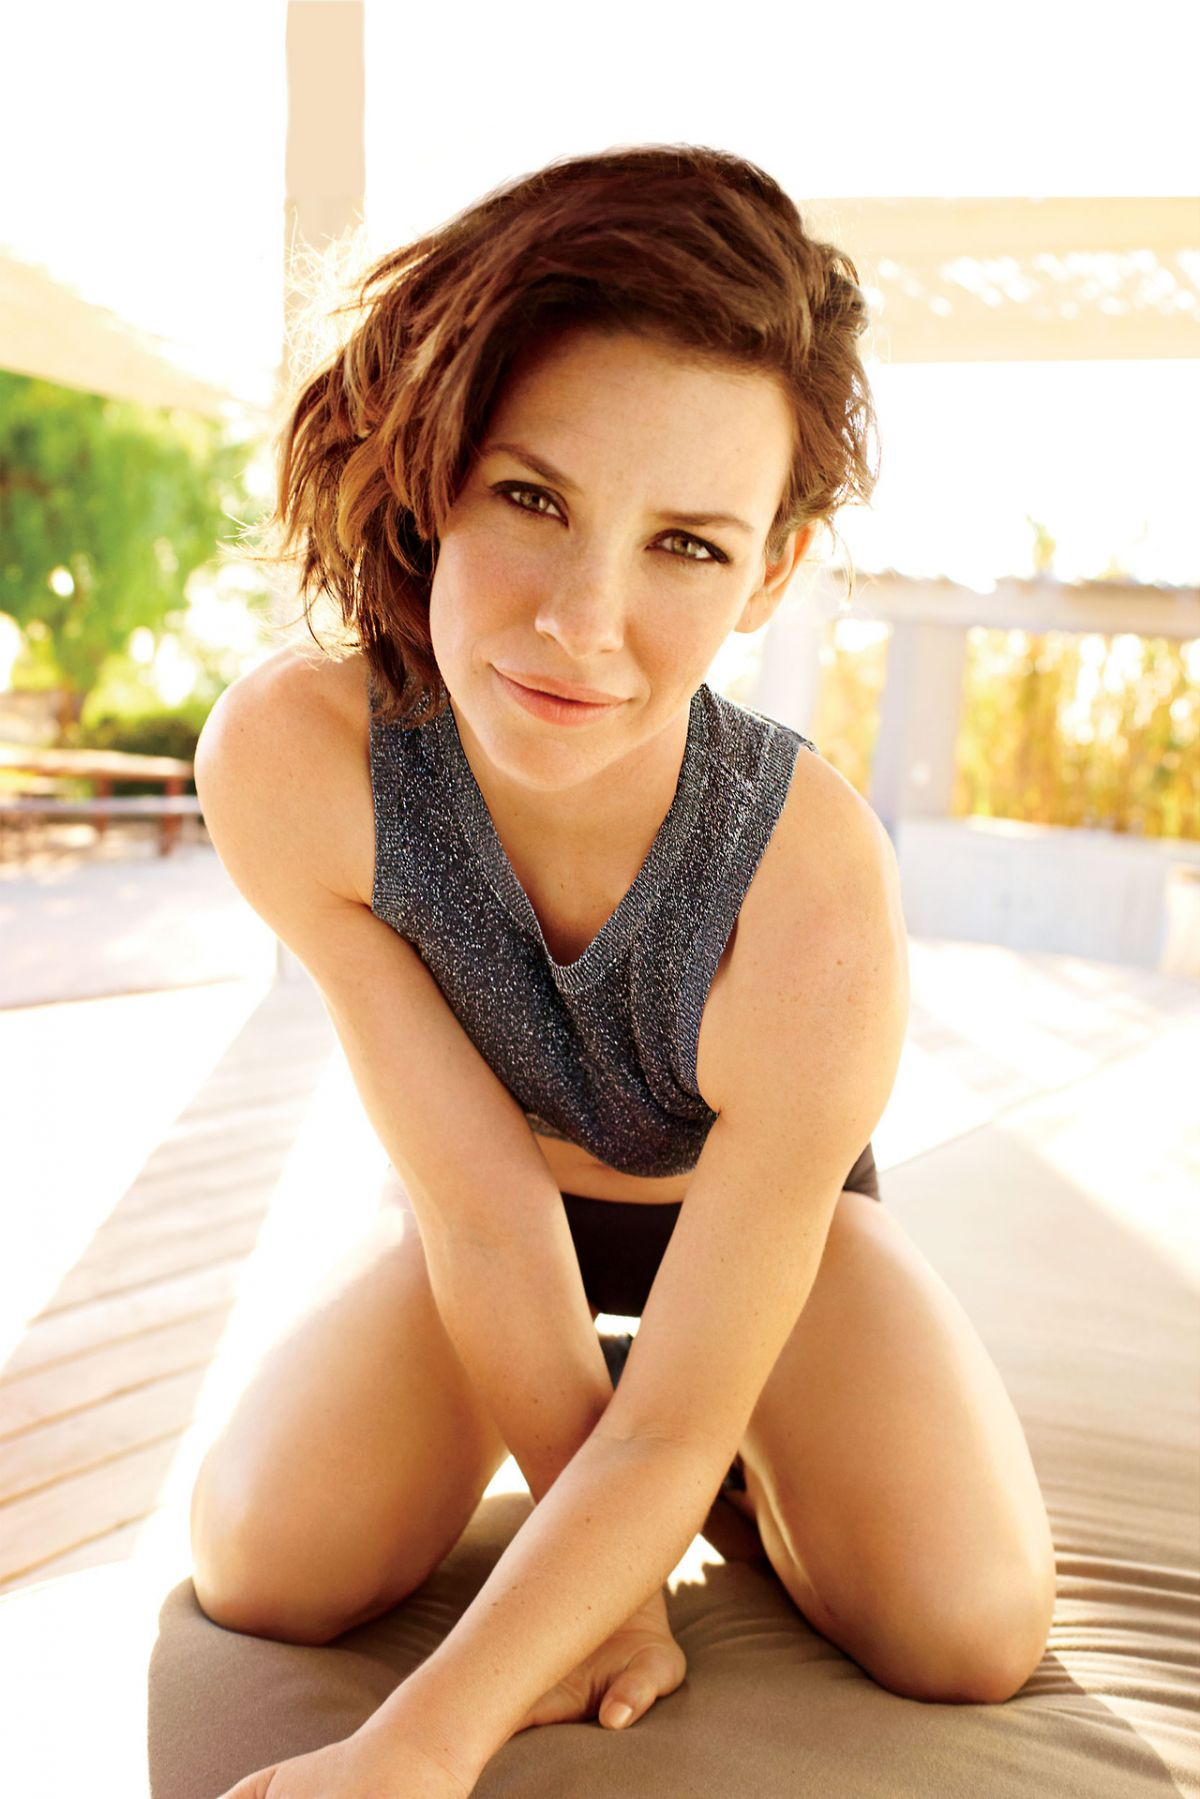 evangeline lilly photoshoots